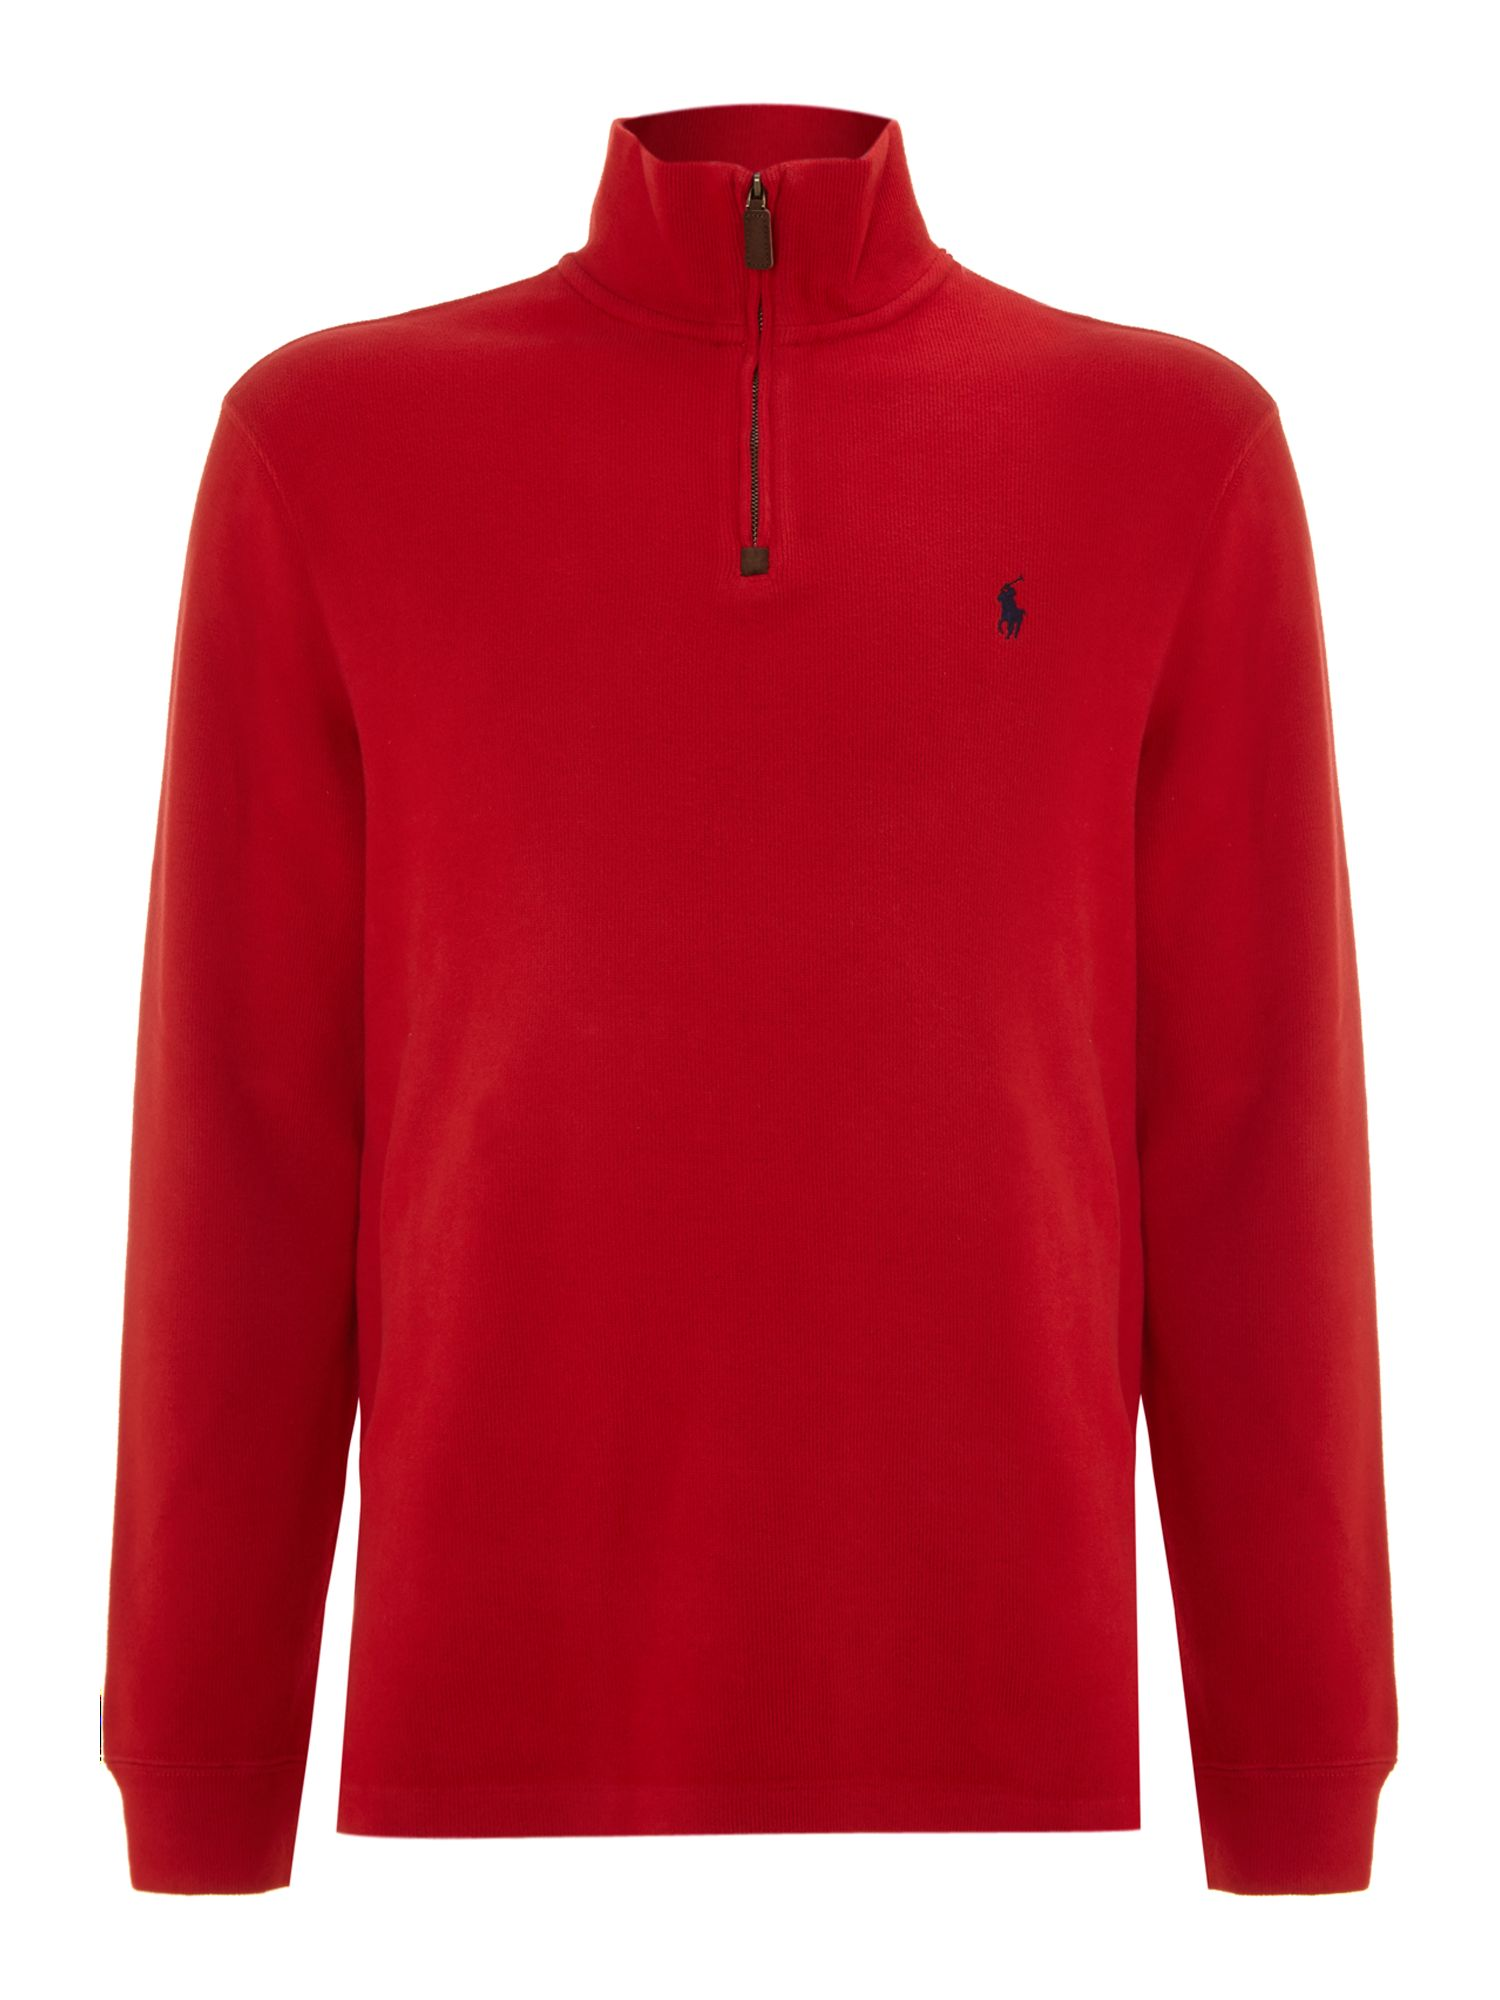 Half zip jumper